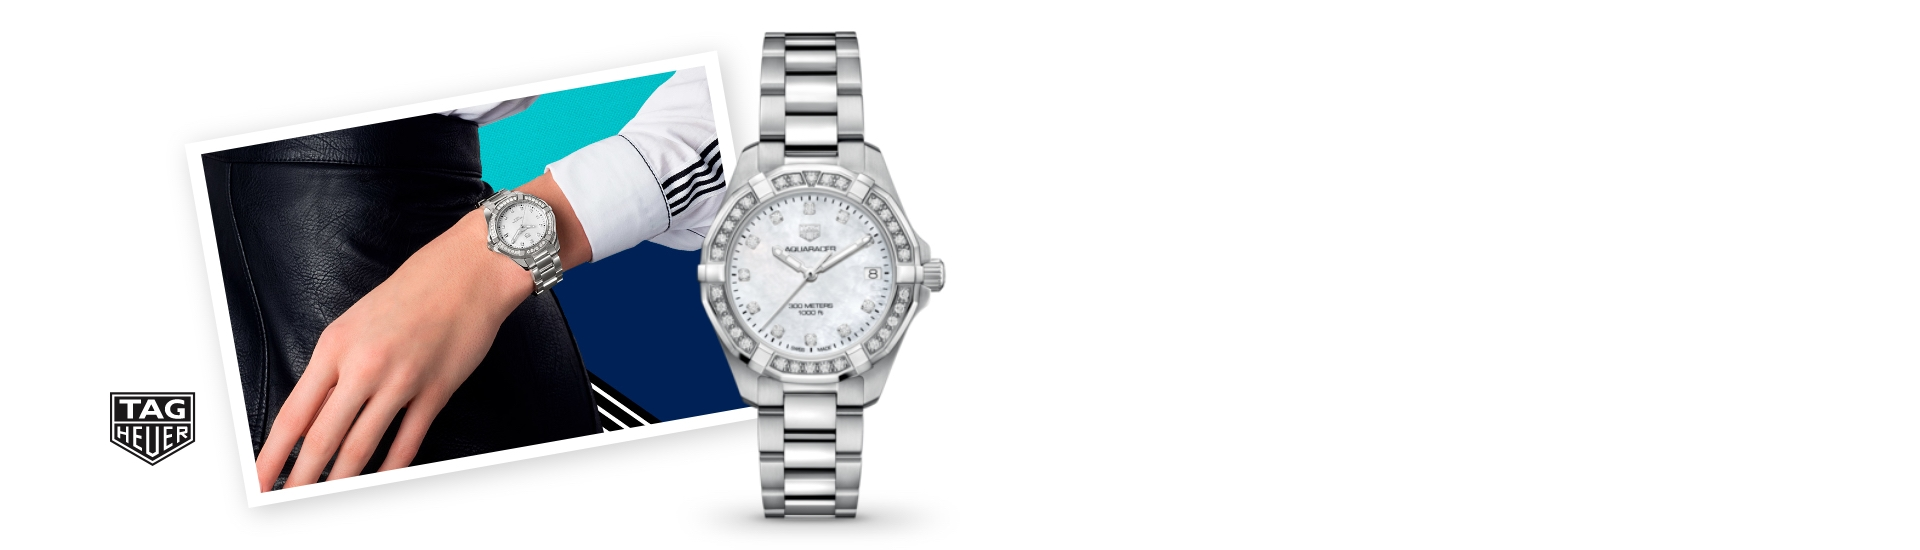 Woman model wearing a Tag Heuer watch next to an image of a diamond Tag Heuer watch.